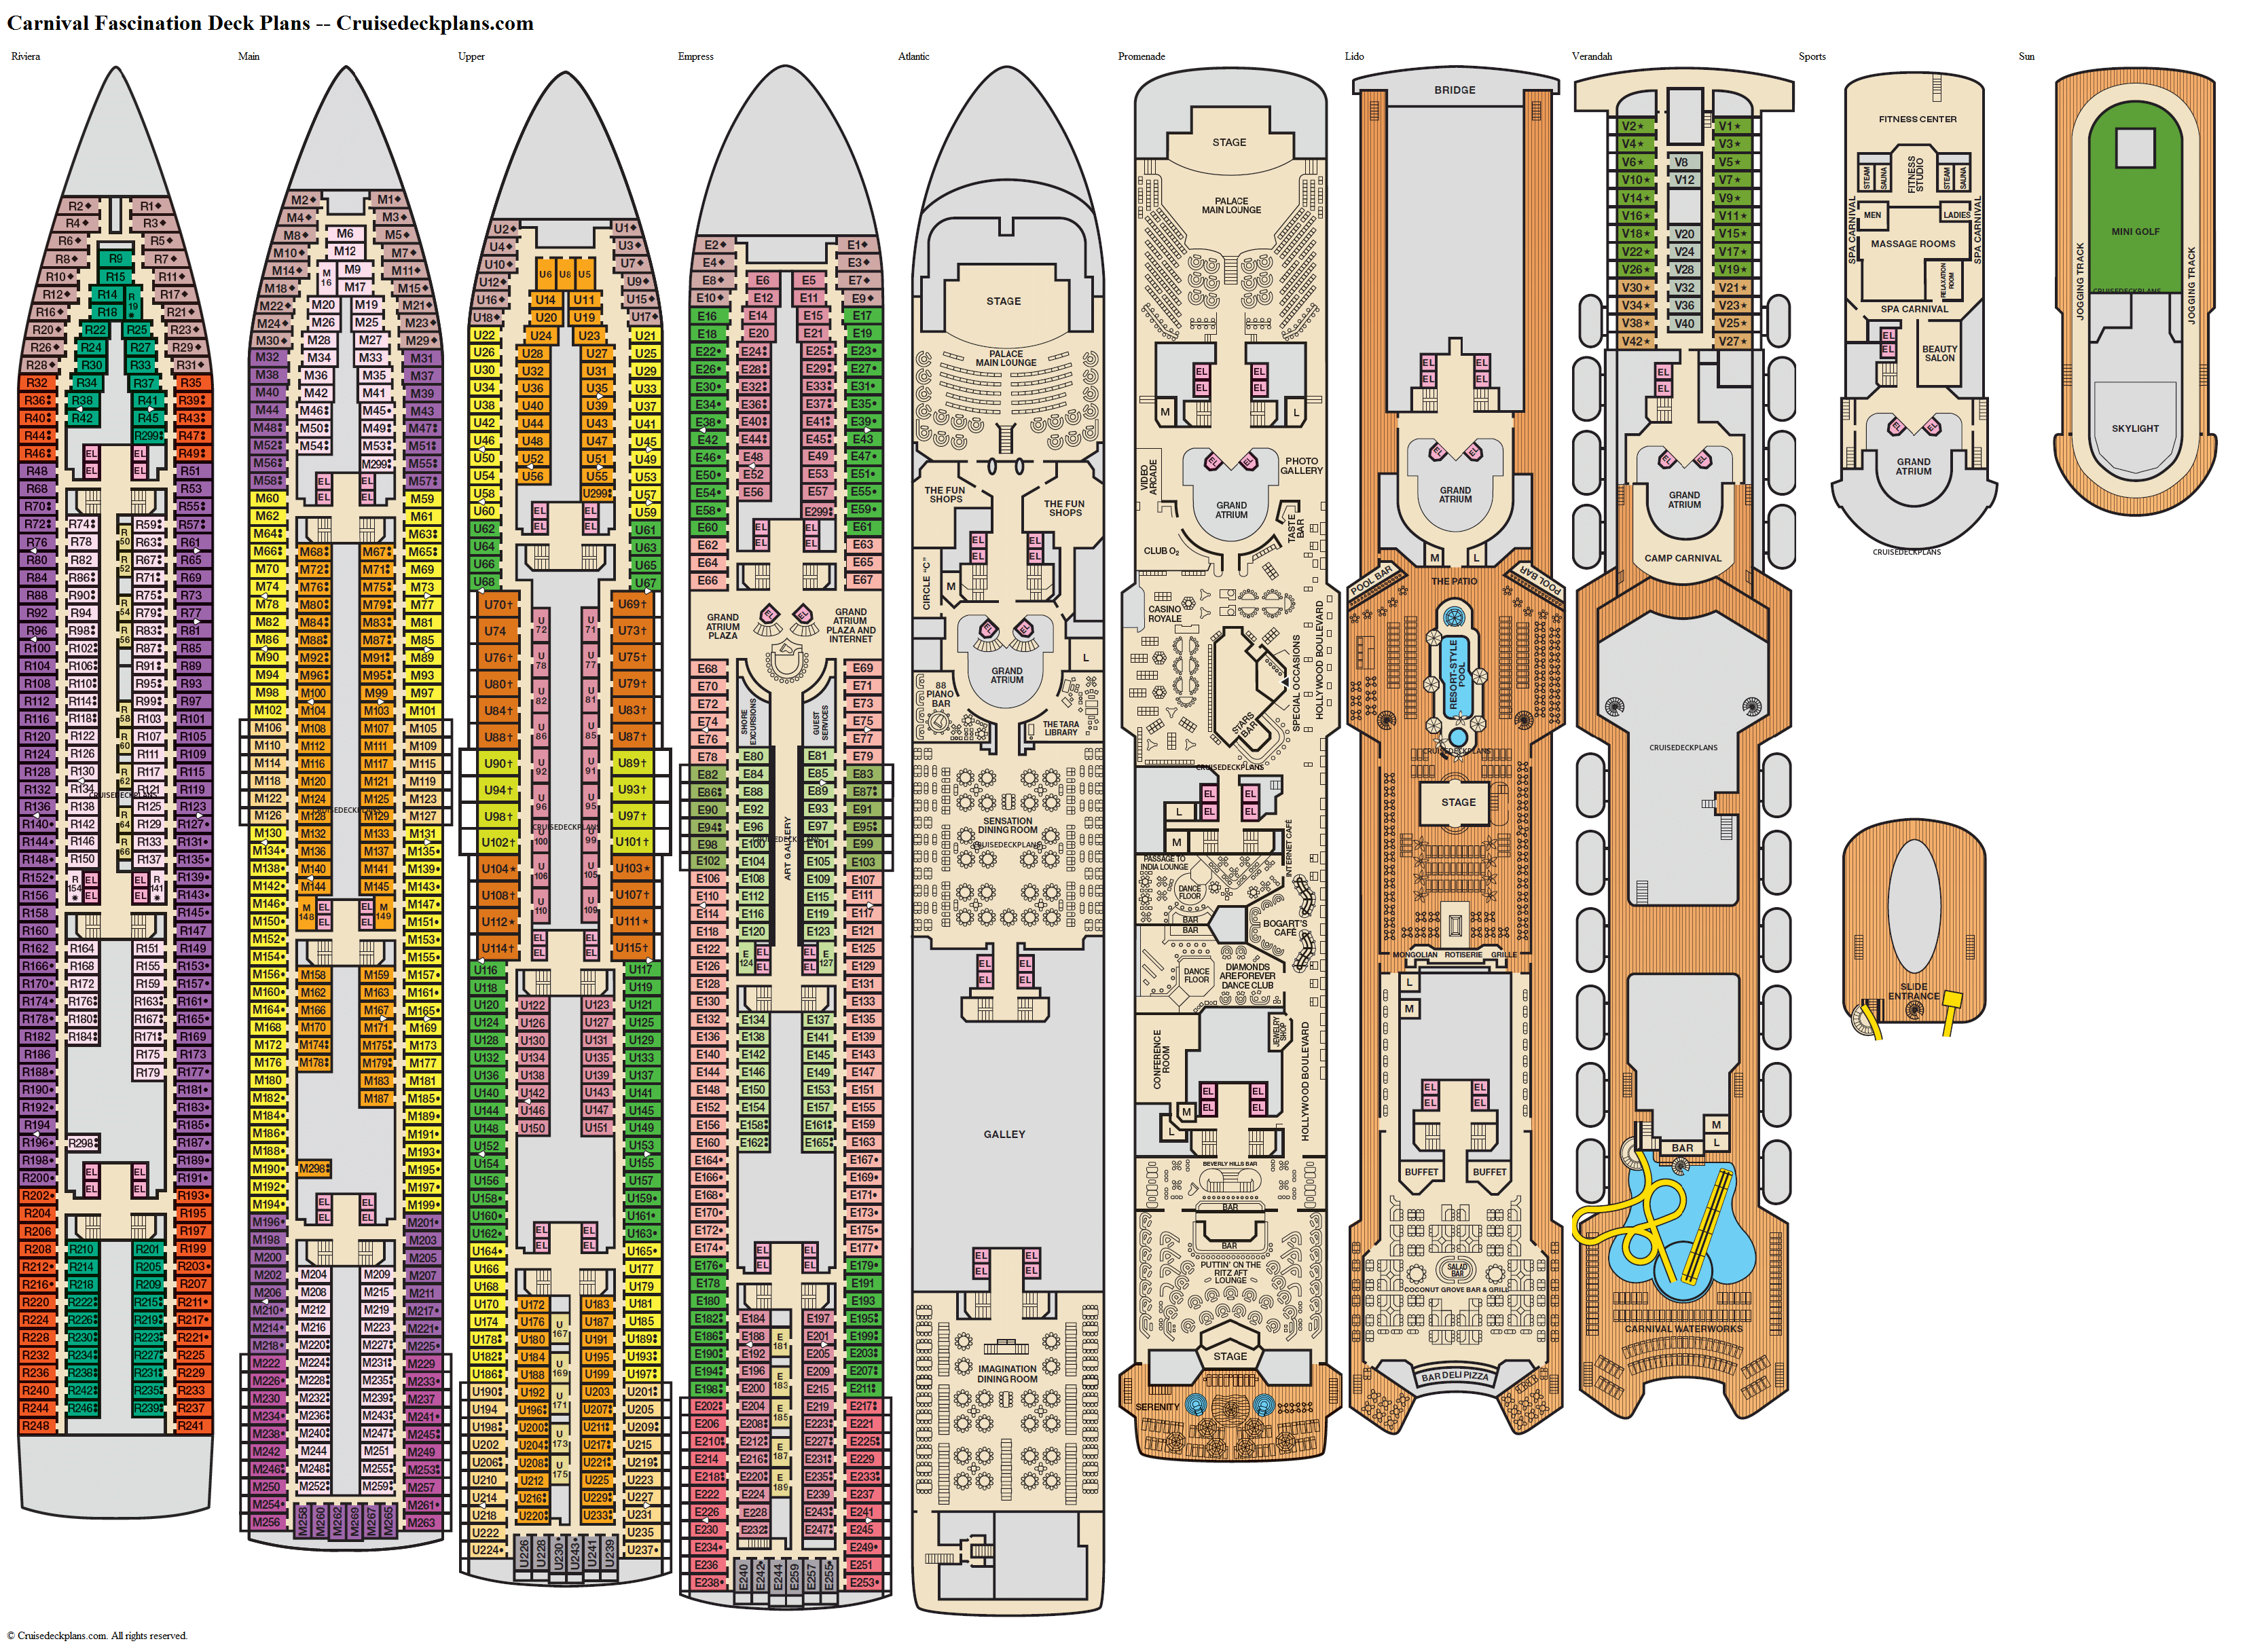 Carnival Fascination deck plans image